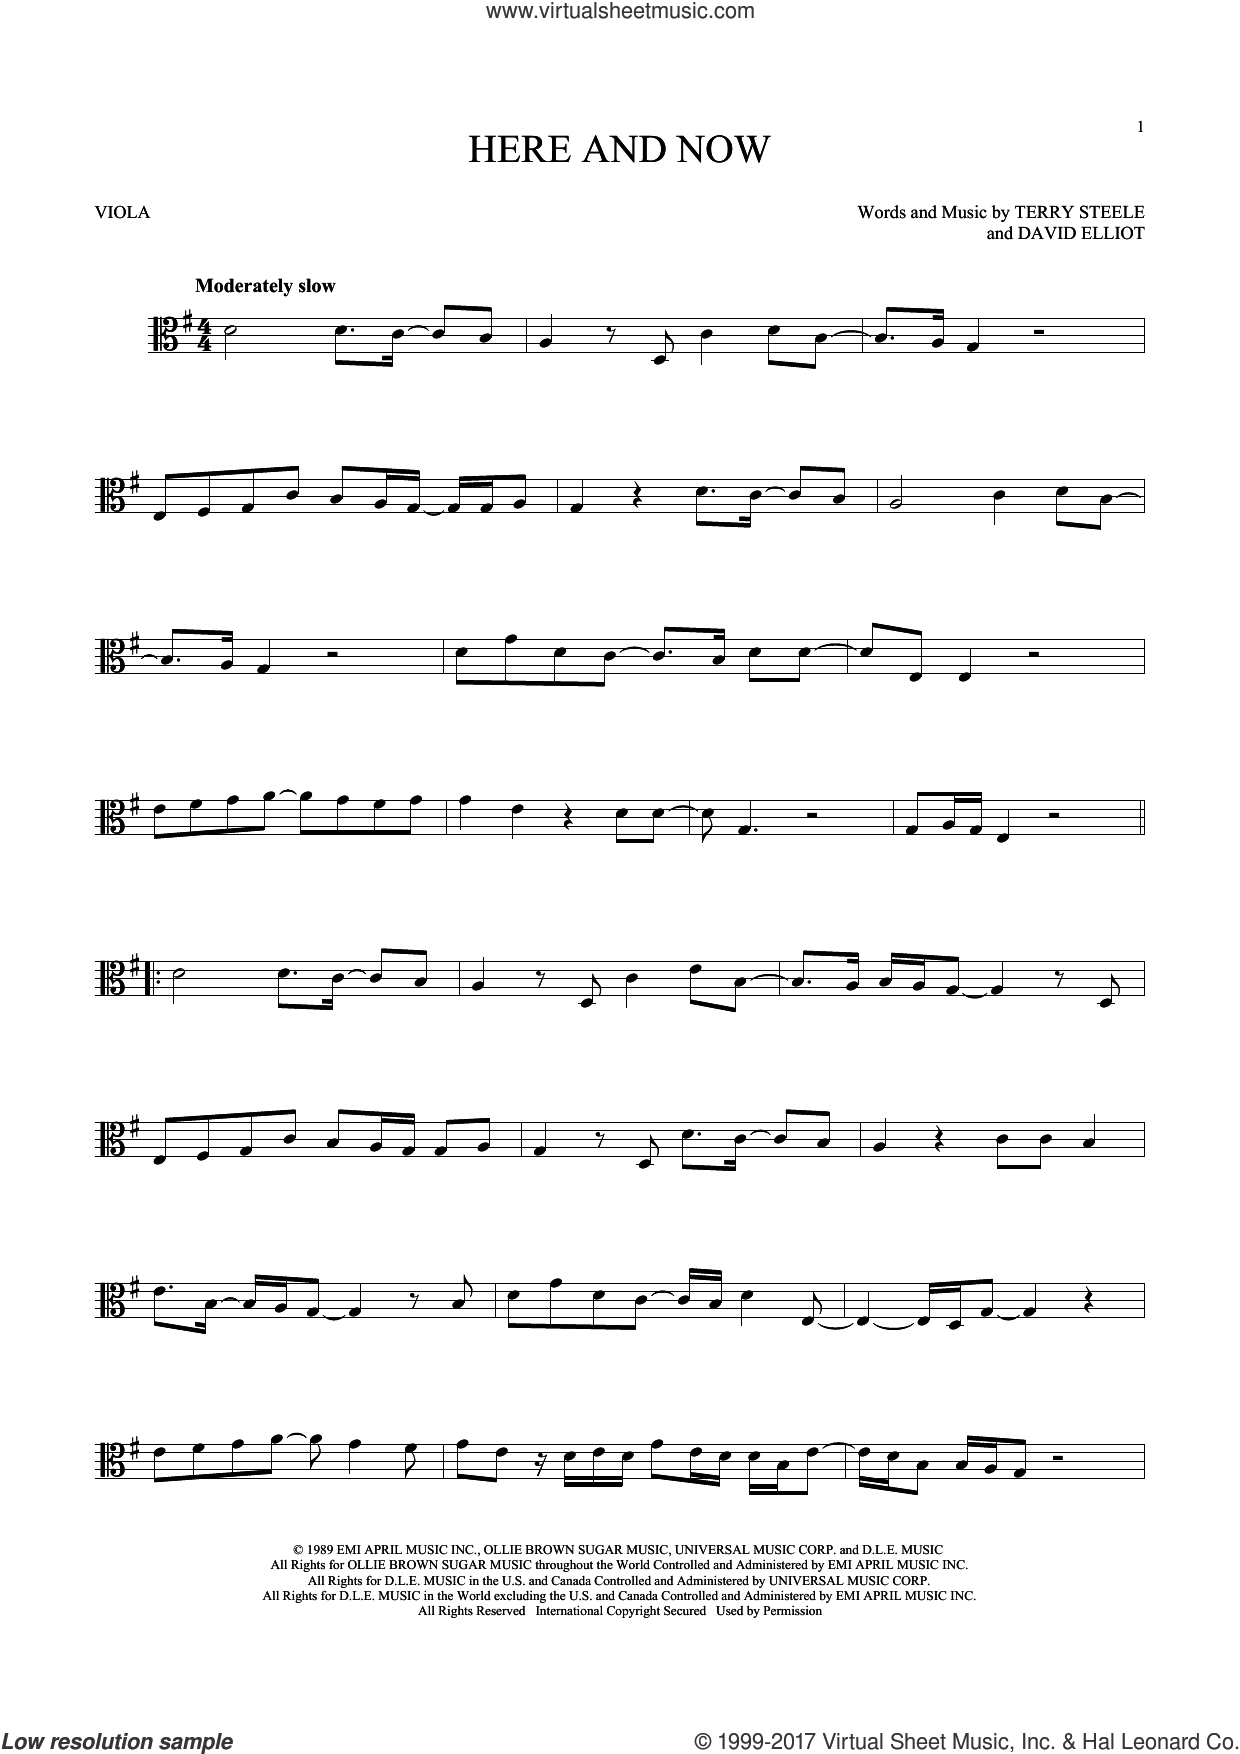 Here And Now sheet music for viola solo by Luther Vandross, David Elliot and Terry Steele, wedding score, intermediate skill level